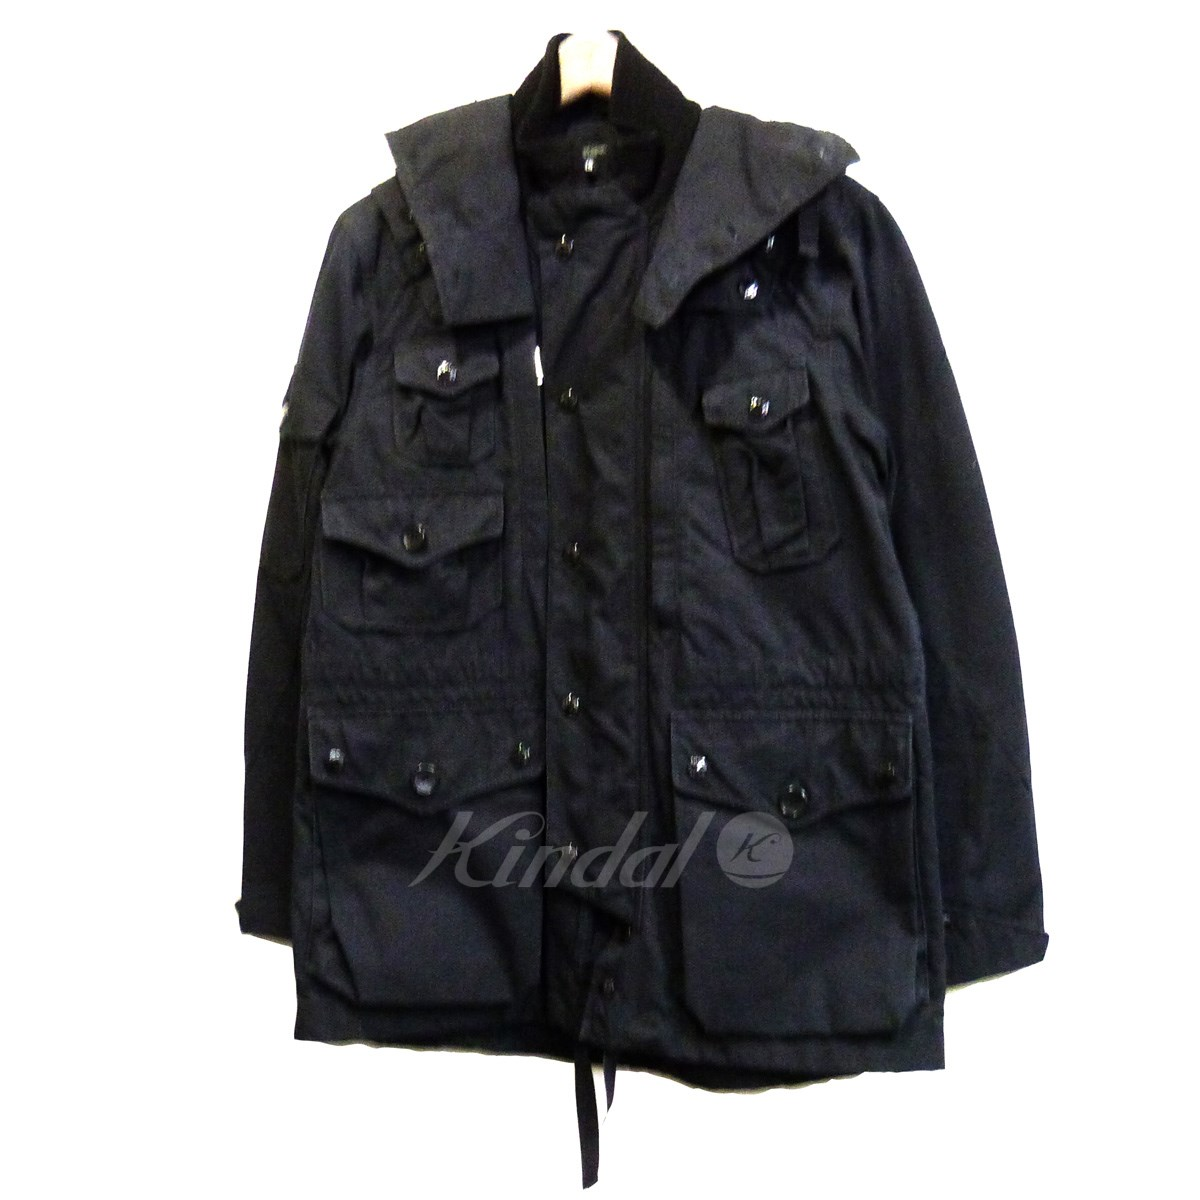 【中古】Engineered Garments 「CLUISER PARKA」 フードブルゾン 【送料無料】 【052957】 【KIND1550】